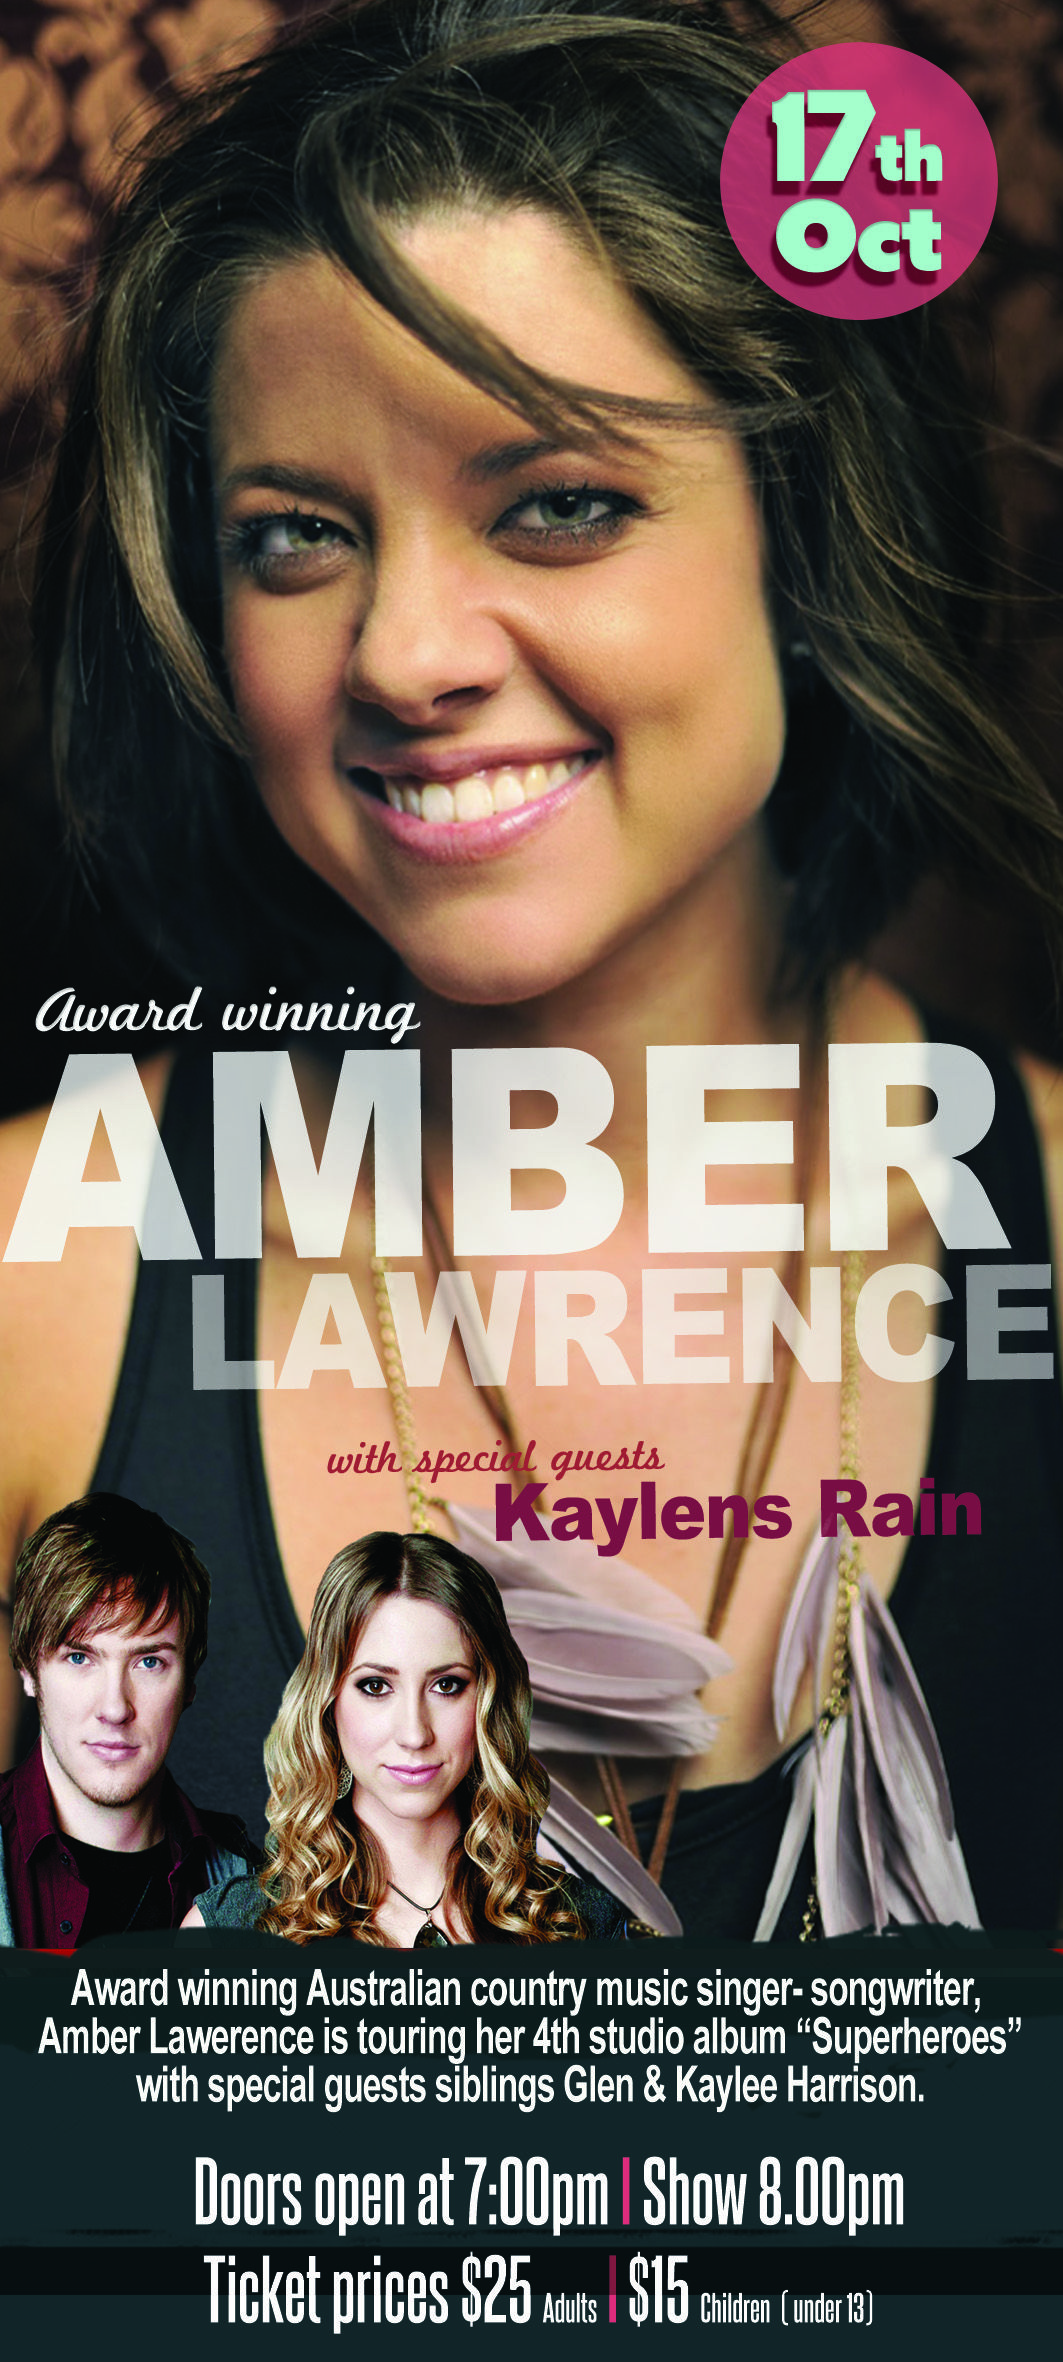 Amber Lawrence Show featuring Kaylens Rain Oct 17th 2014 ...